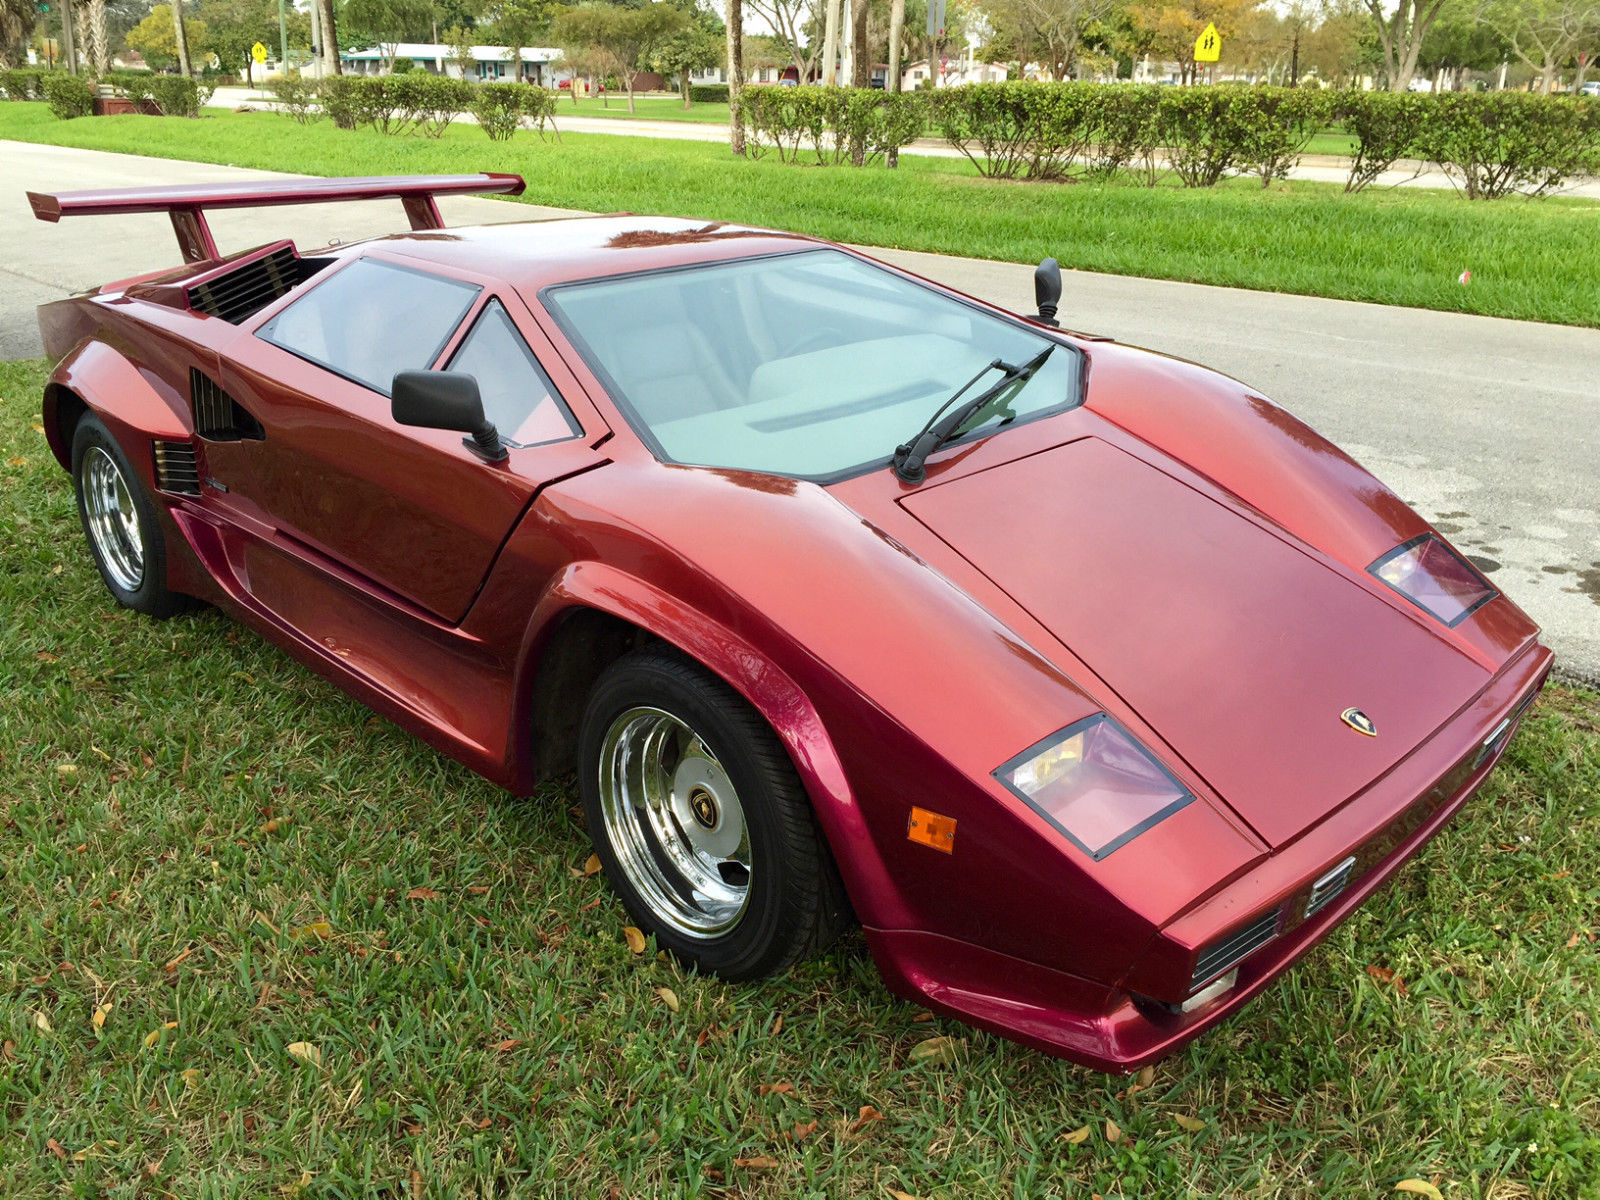 lamborghini countach kit sale lamborghini countach 5000 qv replica for sale 1981 on car and. Black Bedroom Furniture Sets. Home Design Ideas